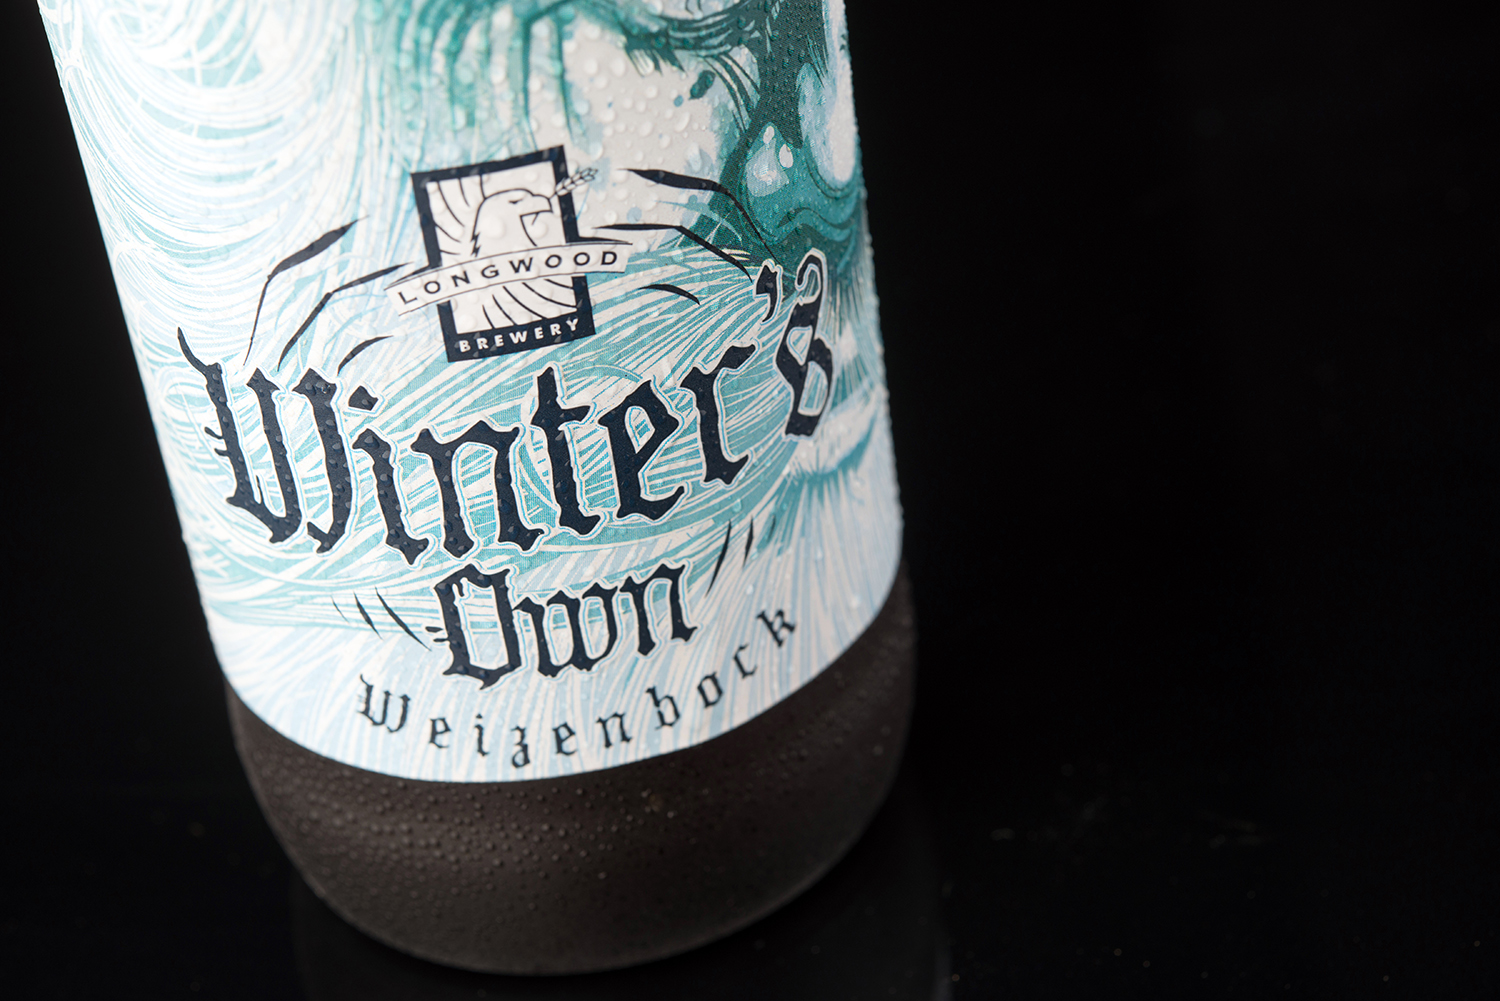 Packaging Design for Longwood Brewery's Winter's Own Weizenbock